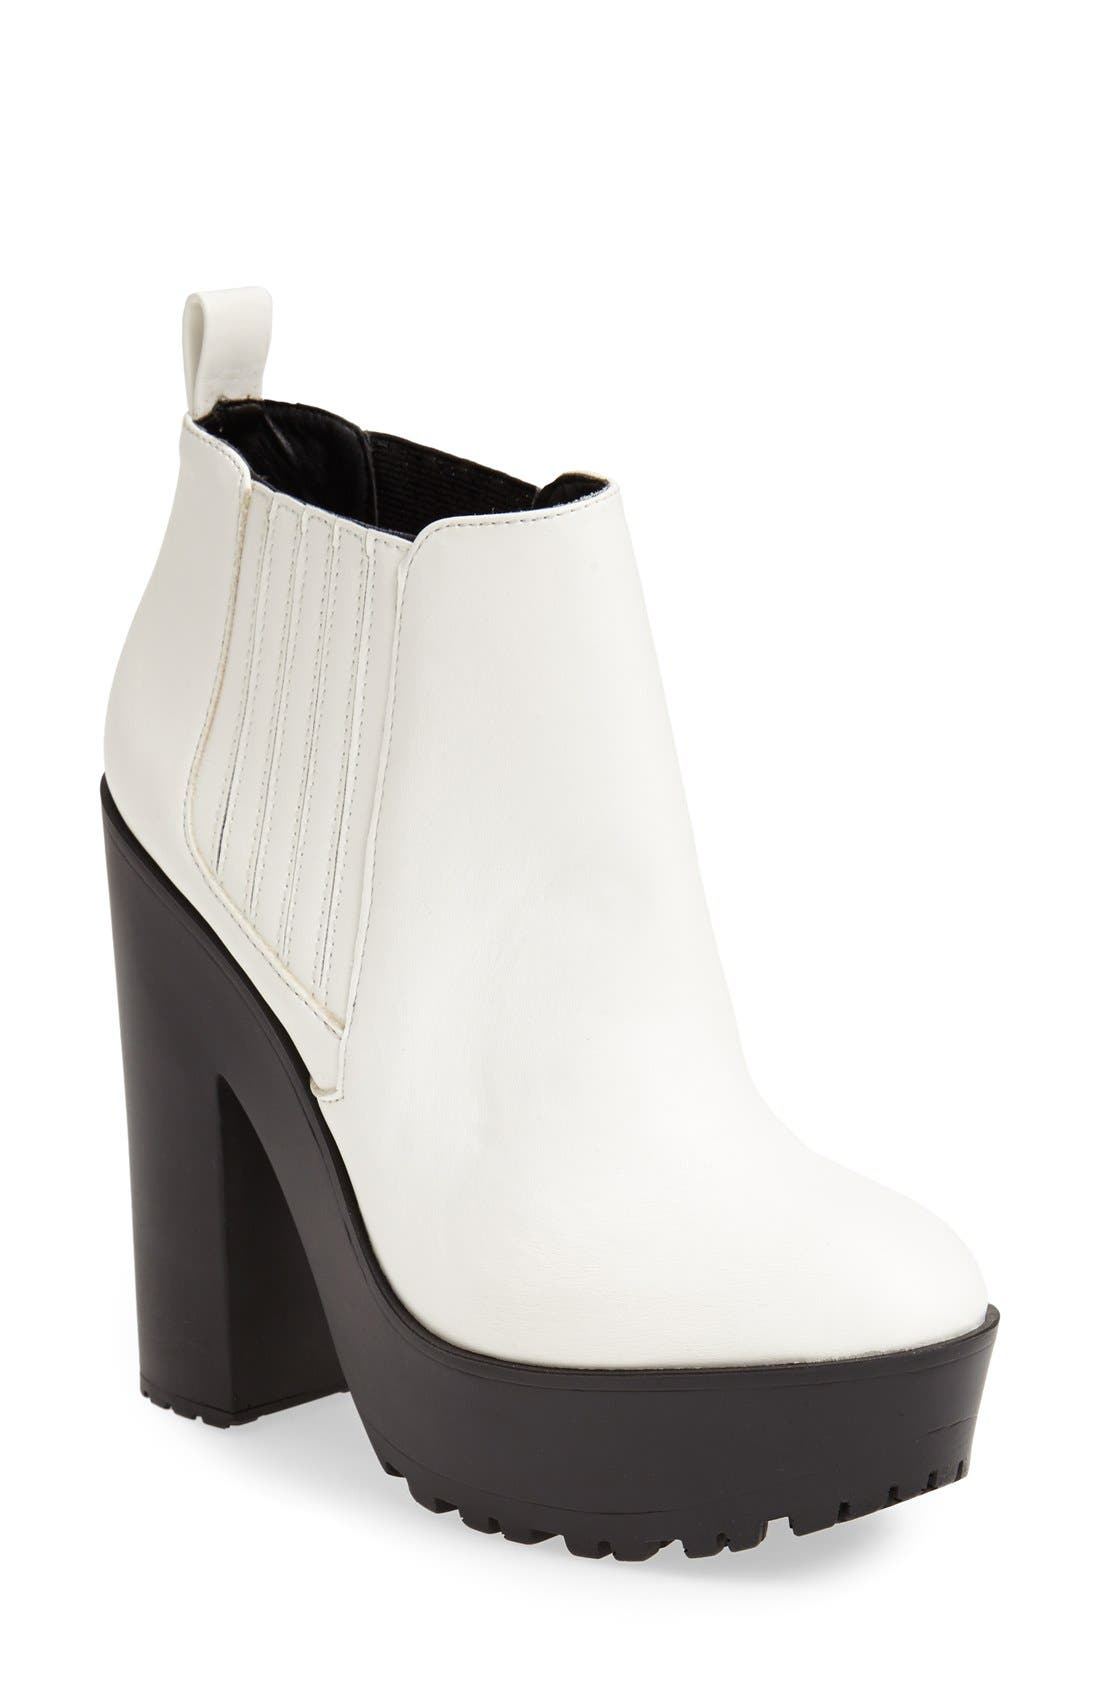 Alternate Image 1 Selected - KENDALL + KYLIE Madden Girl 'Chicc' Platform Bootie (Women)